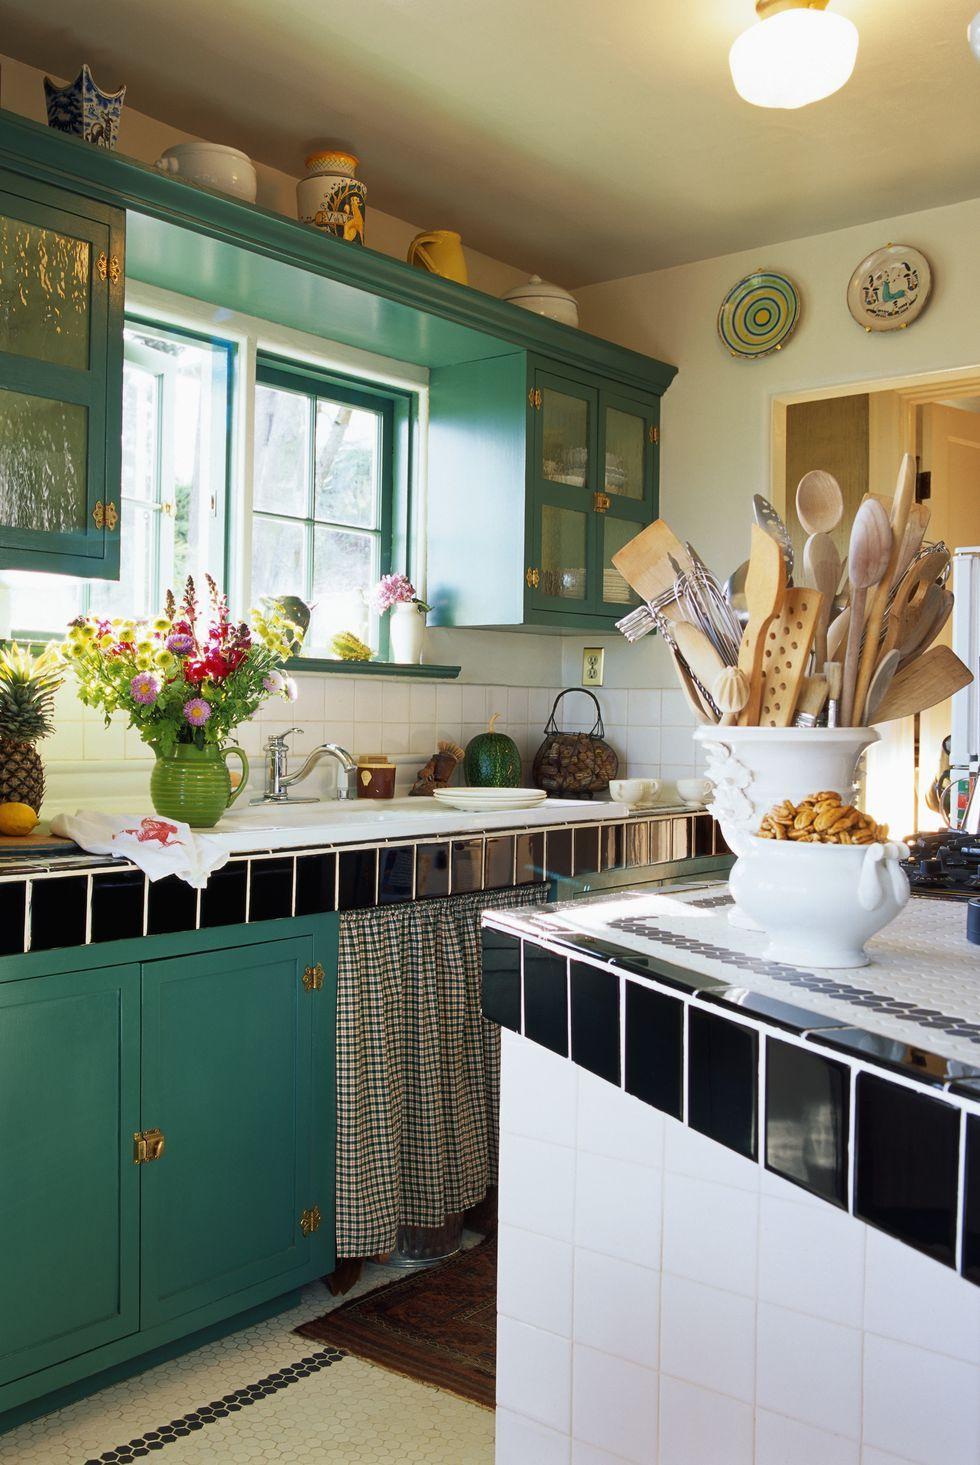 The Best Ideas for Decorating Above Your Kitchen